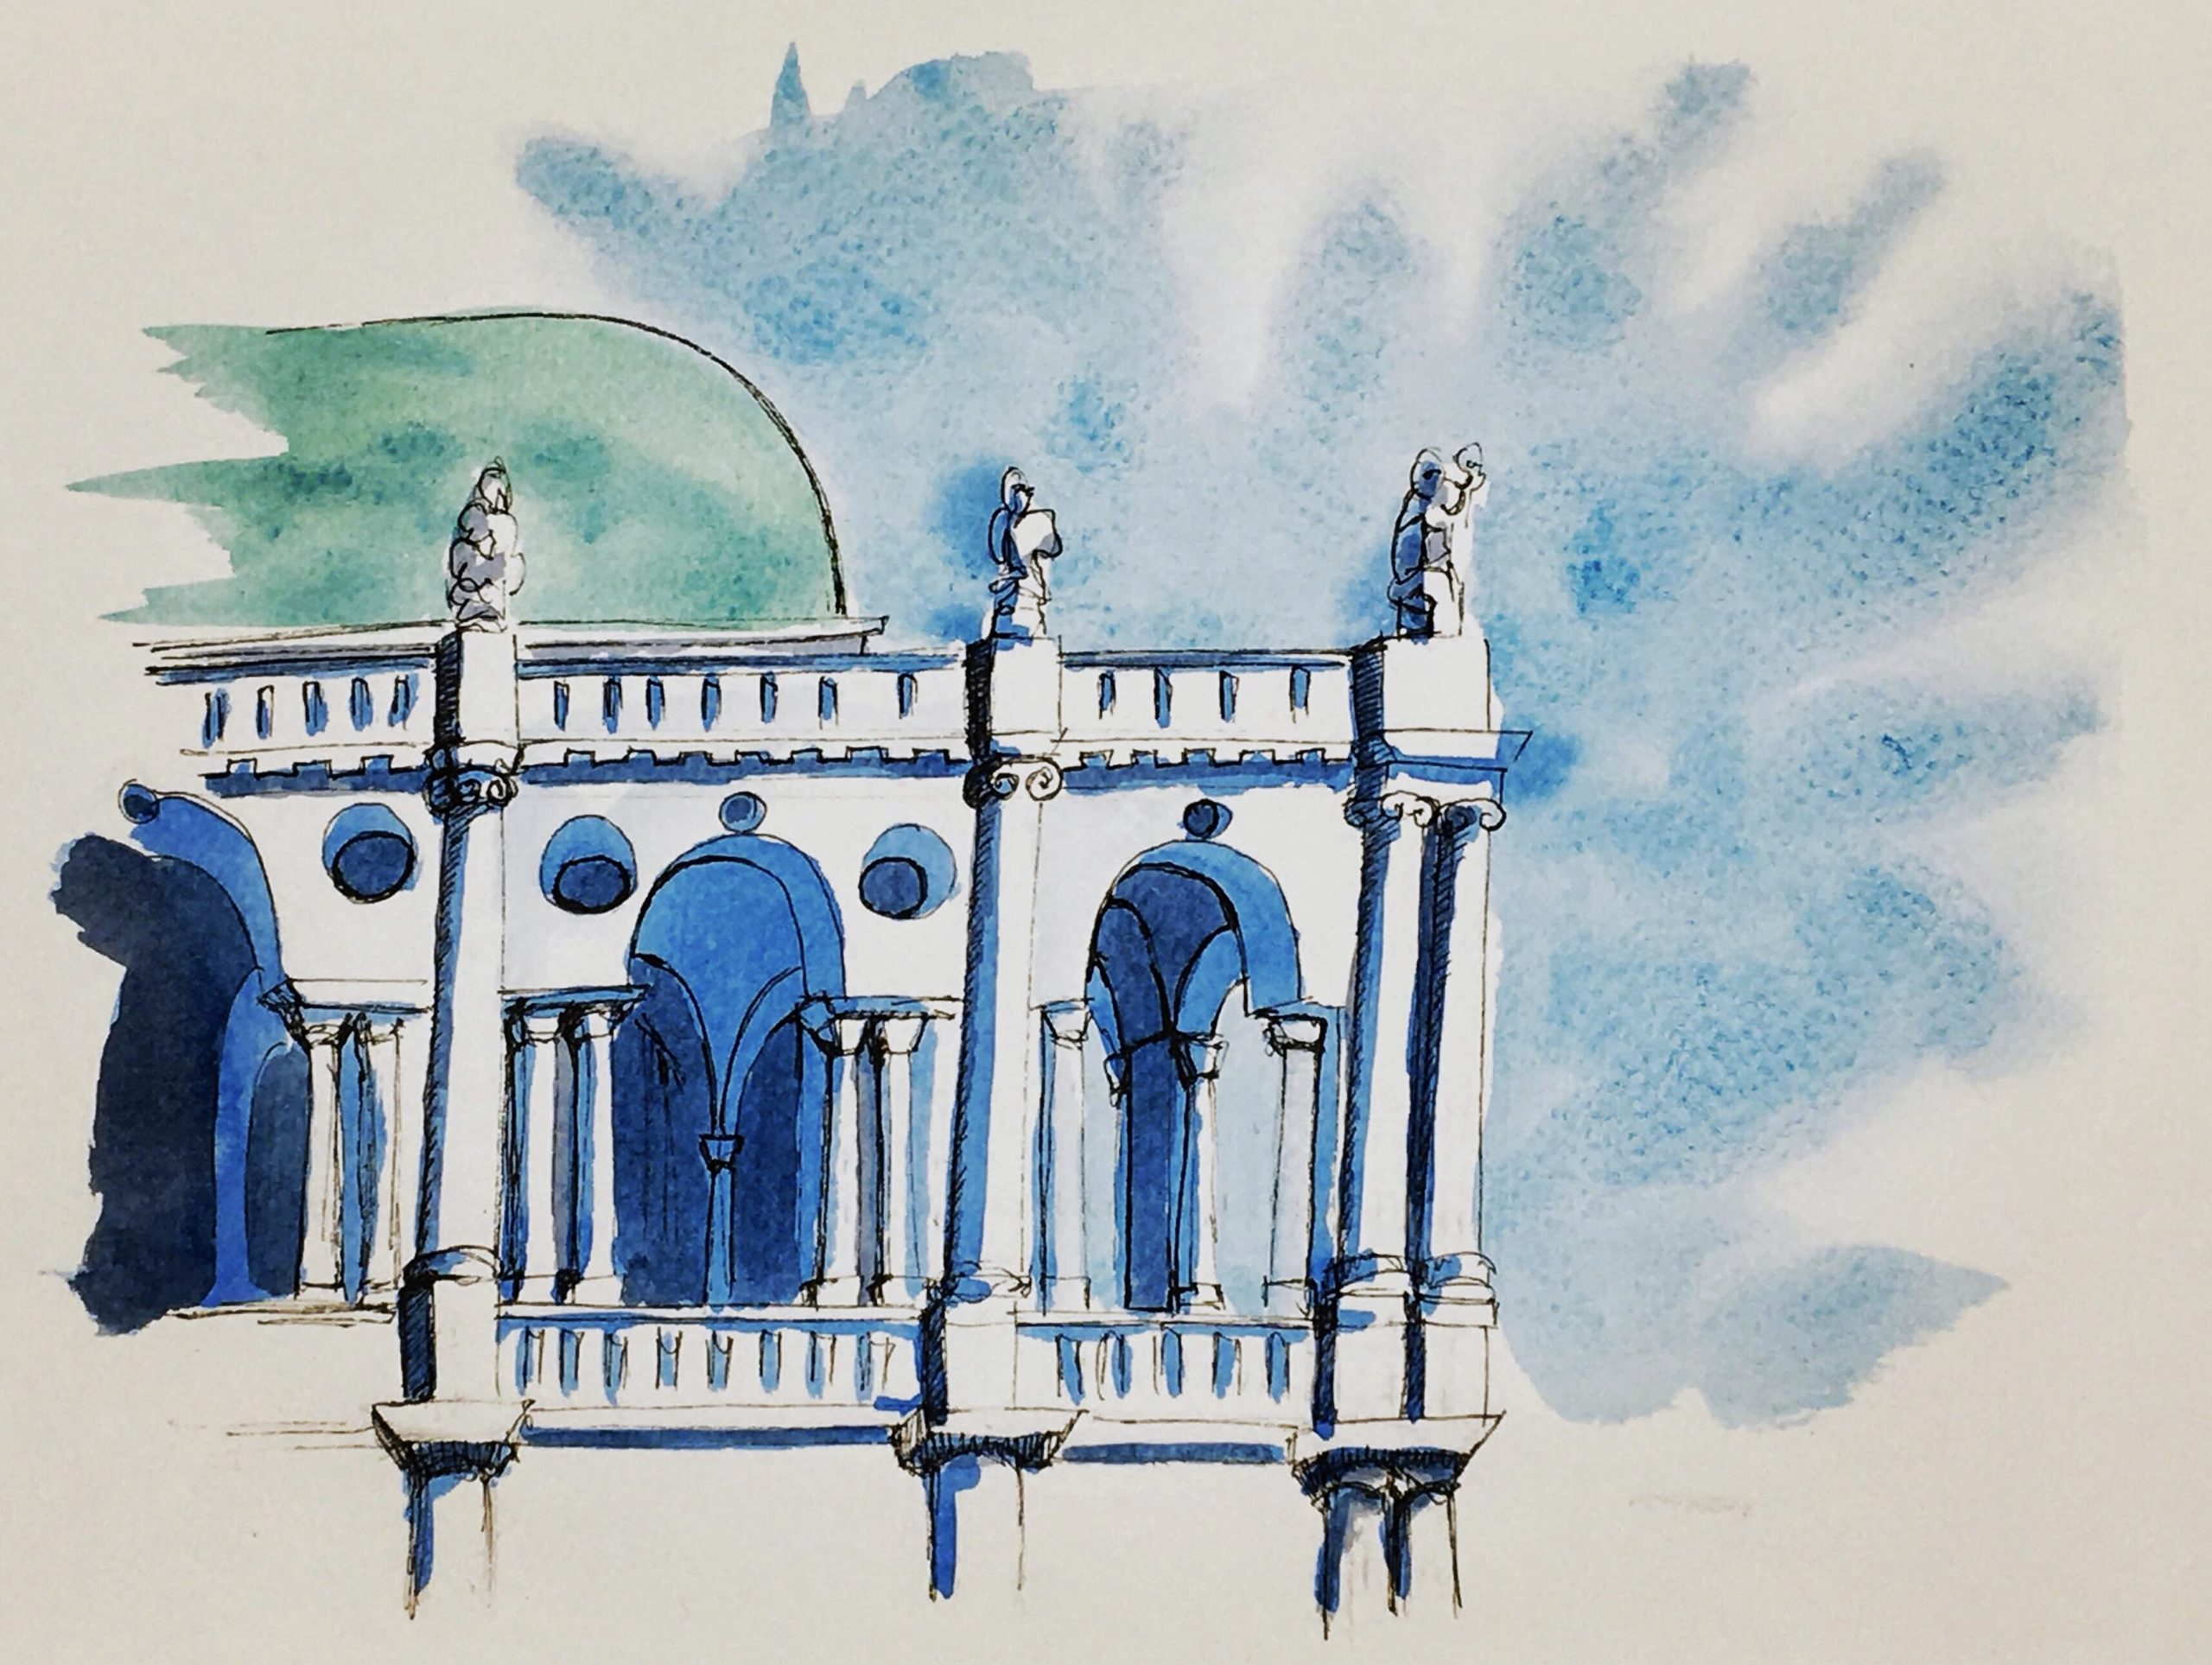 Painting of the Loggia of the Basilica Palladiana in Vicenza